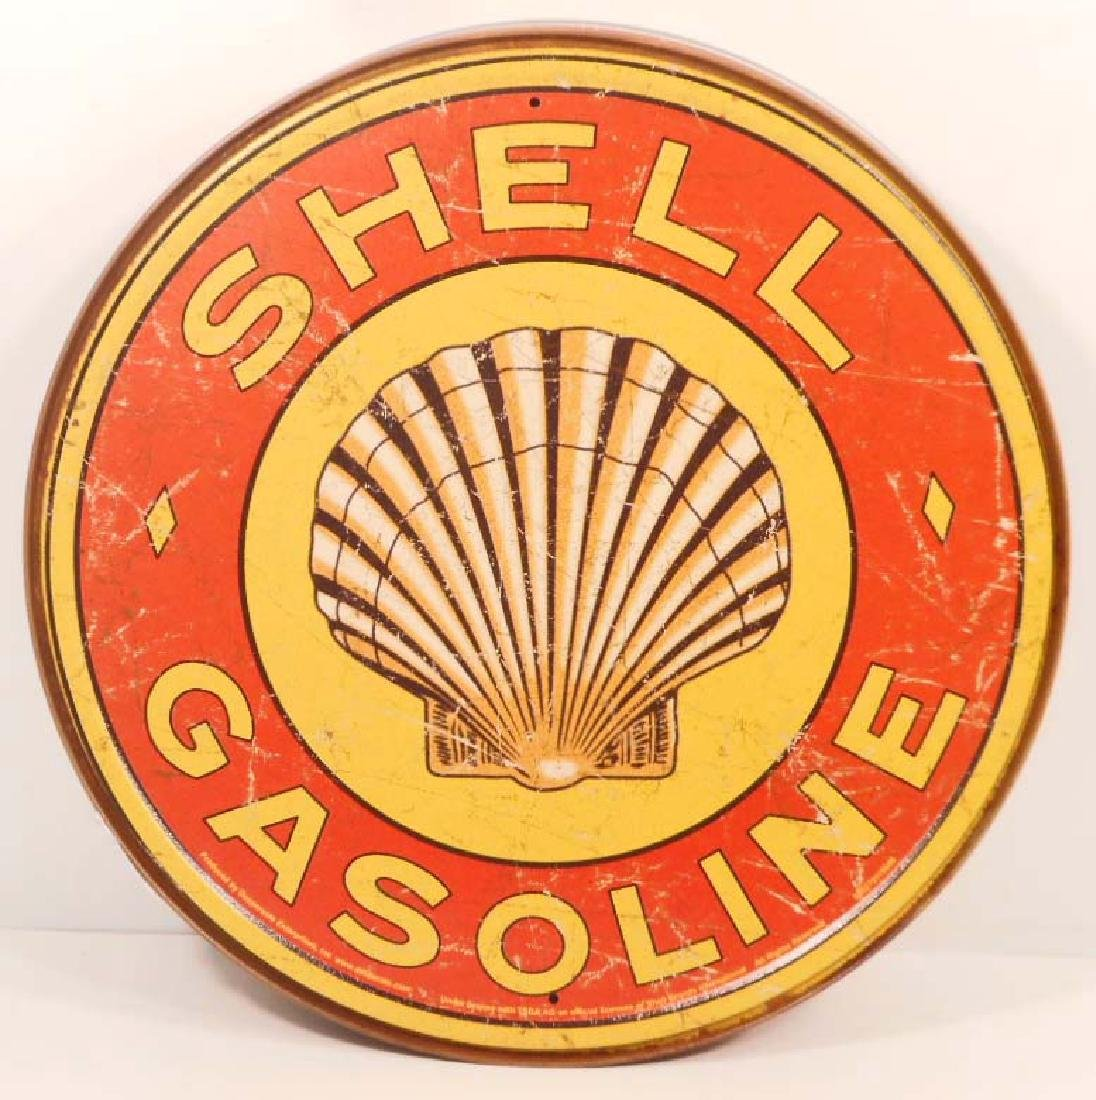 SHELL ADVERTISING ROUND METAL SIGN